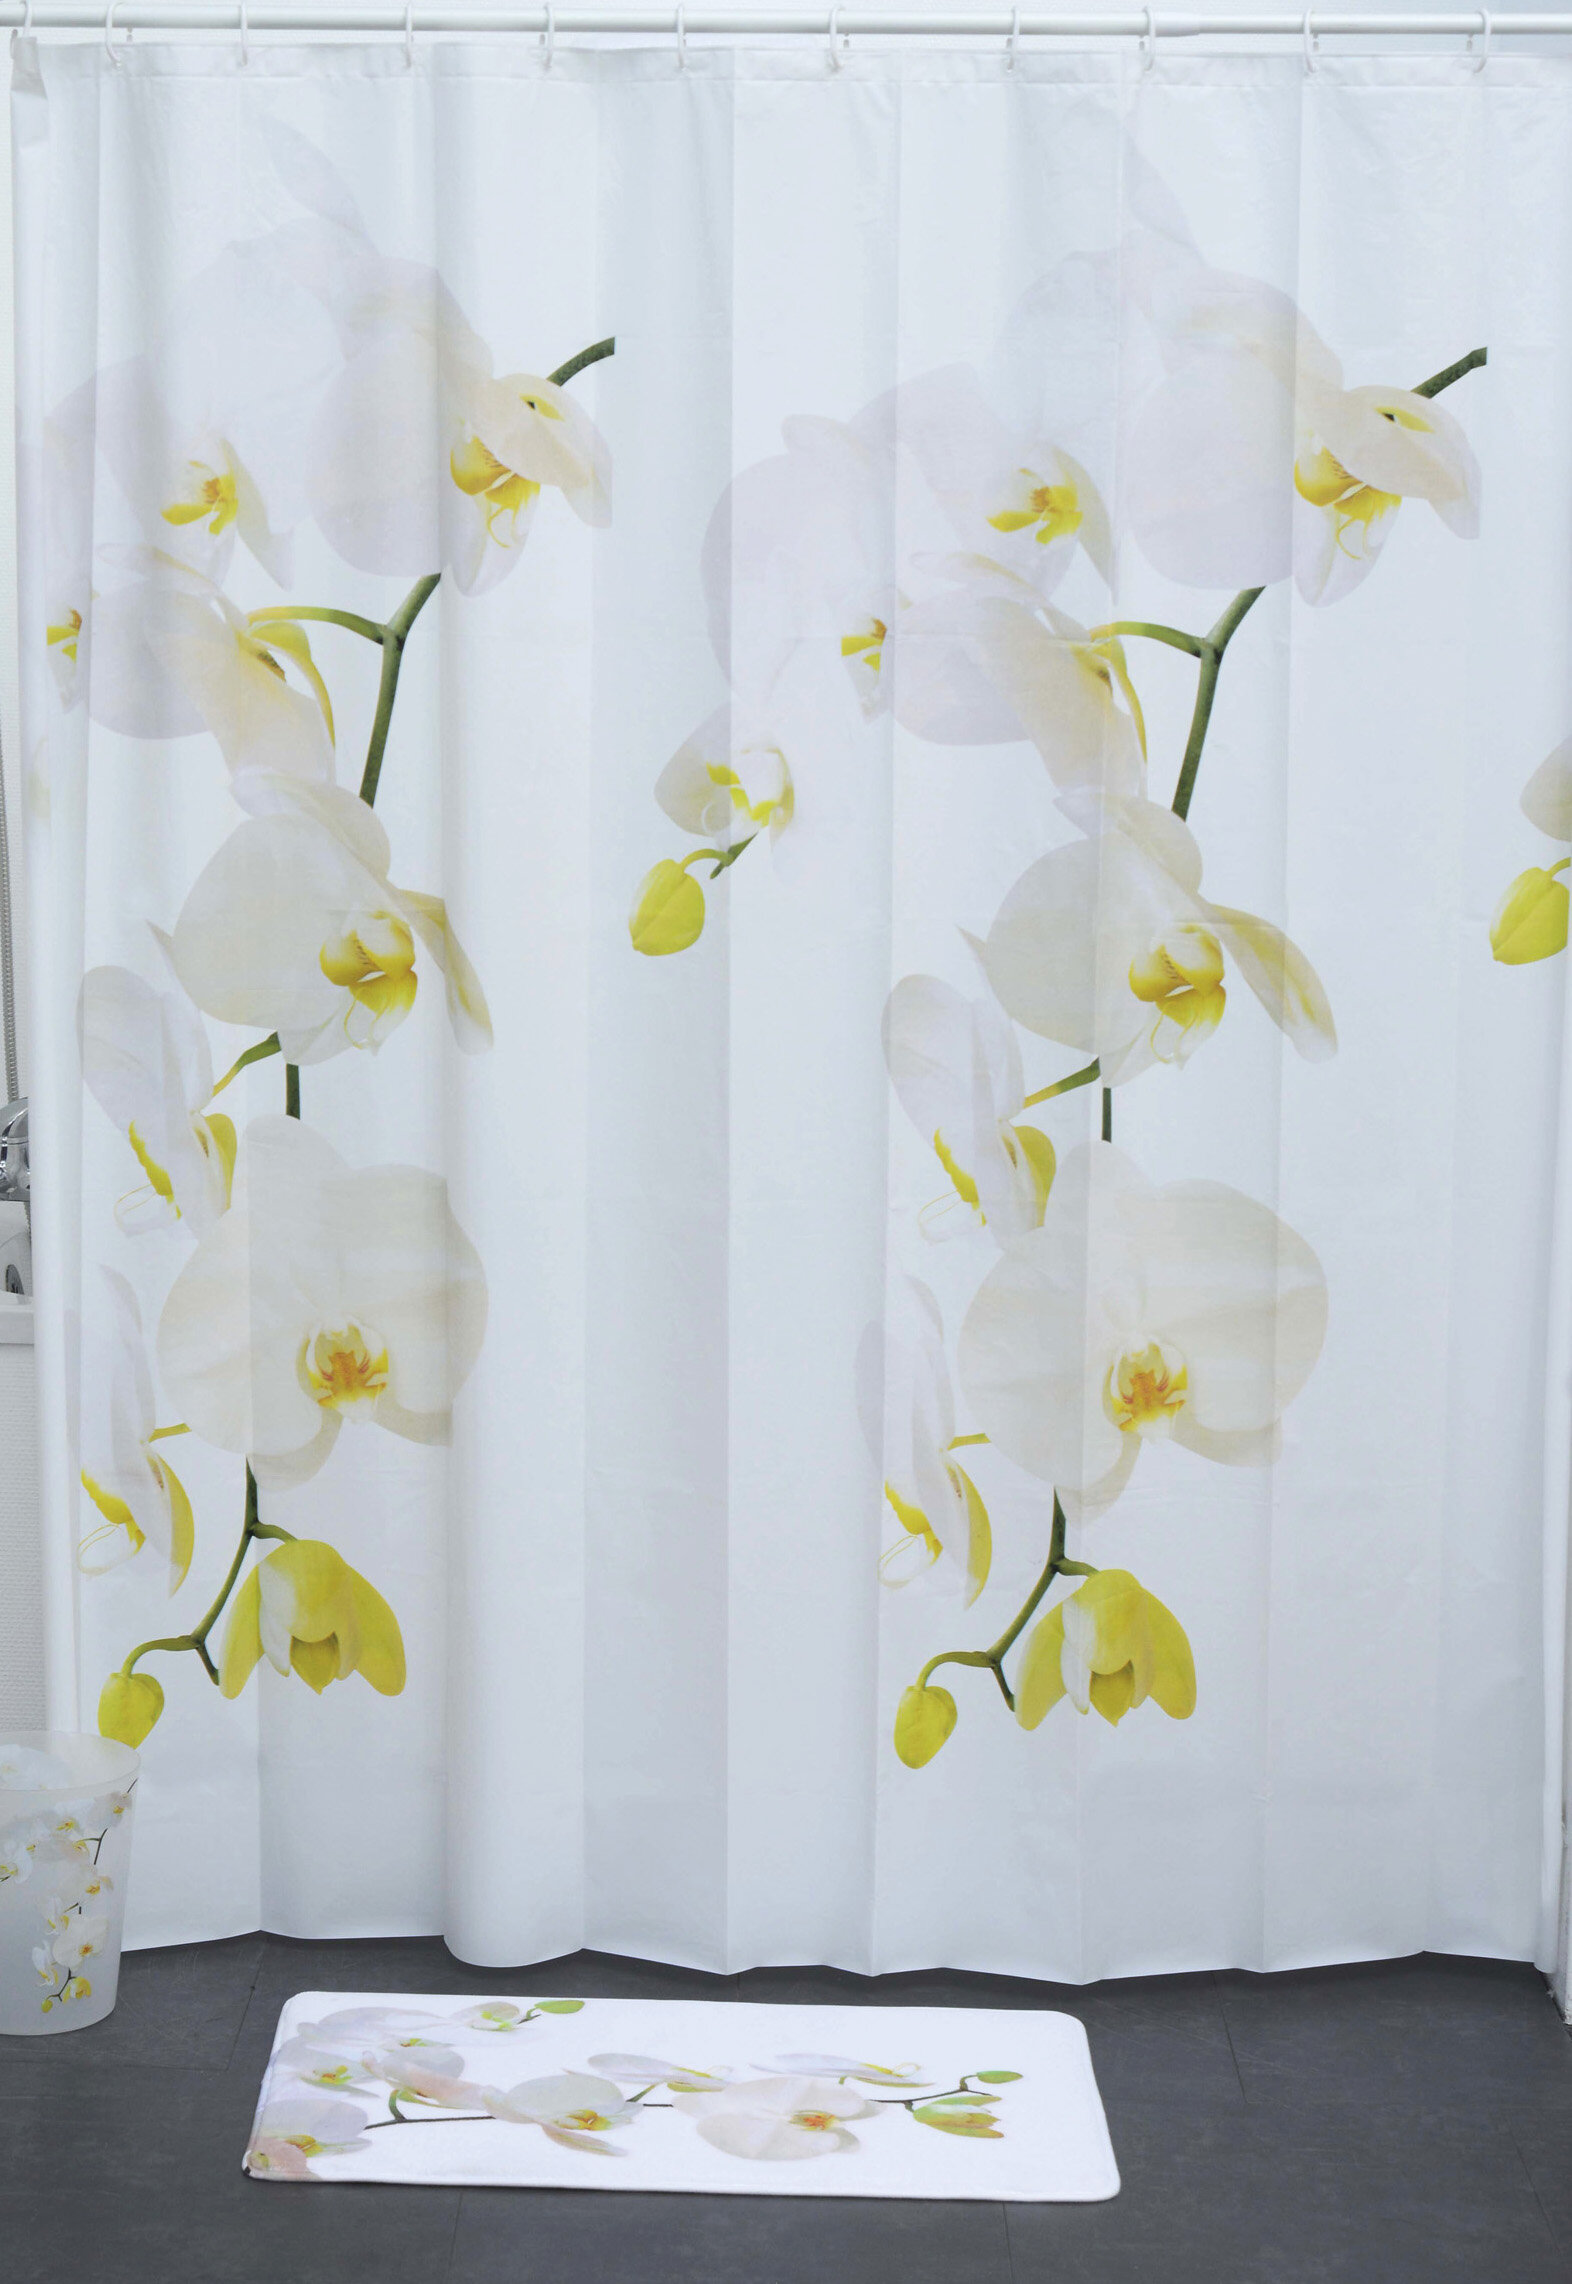 curtains inspirational choosing striped of pics shower yellow purple smlf photos green and curtain fresh gratograt